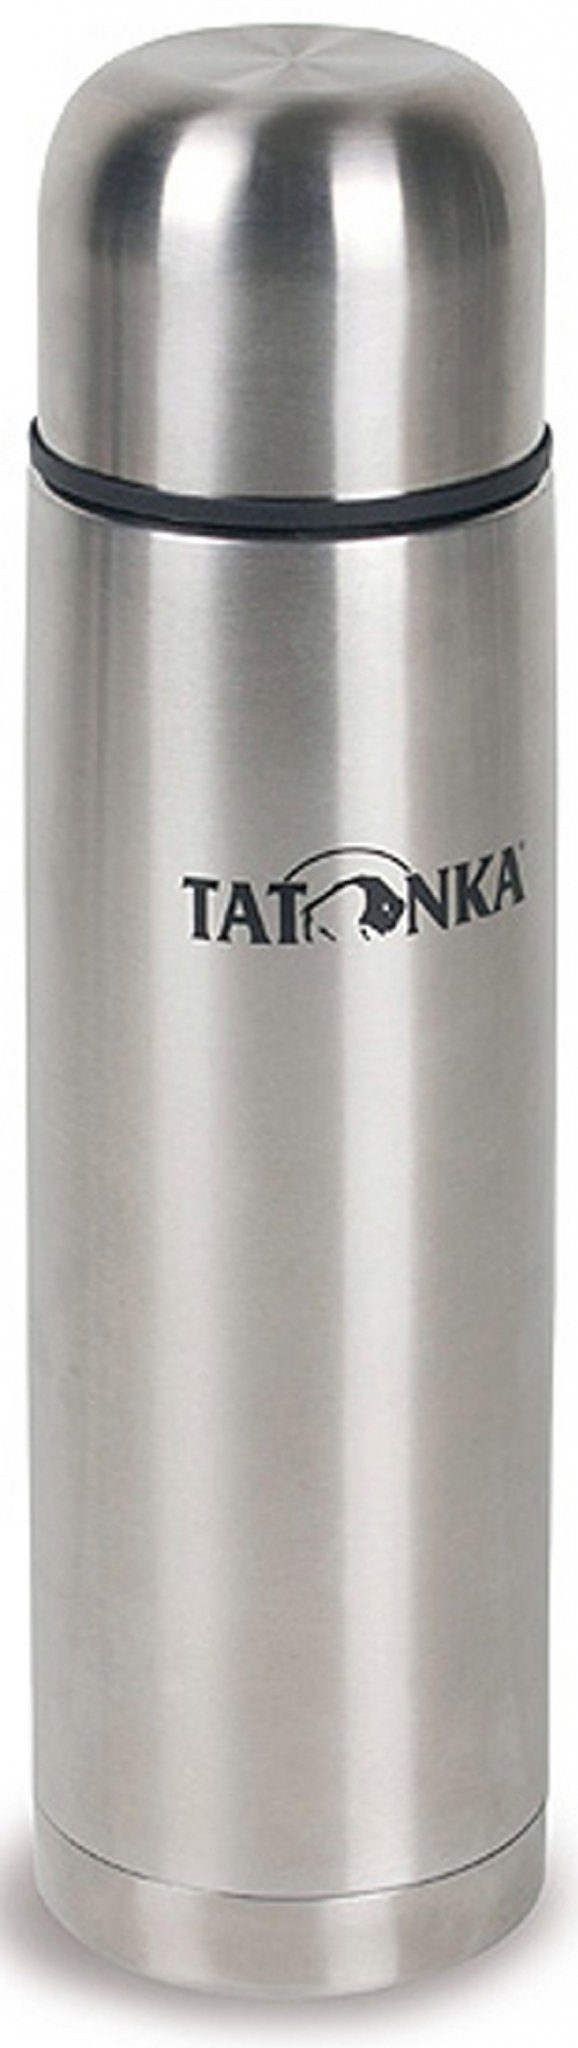 Tatonka Trinkflasche »H&C Stuff Bottle 1l«